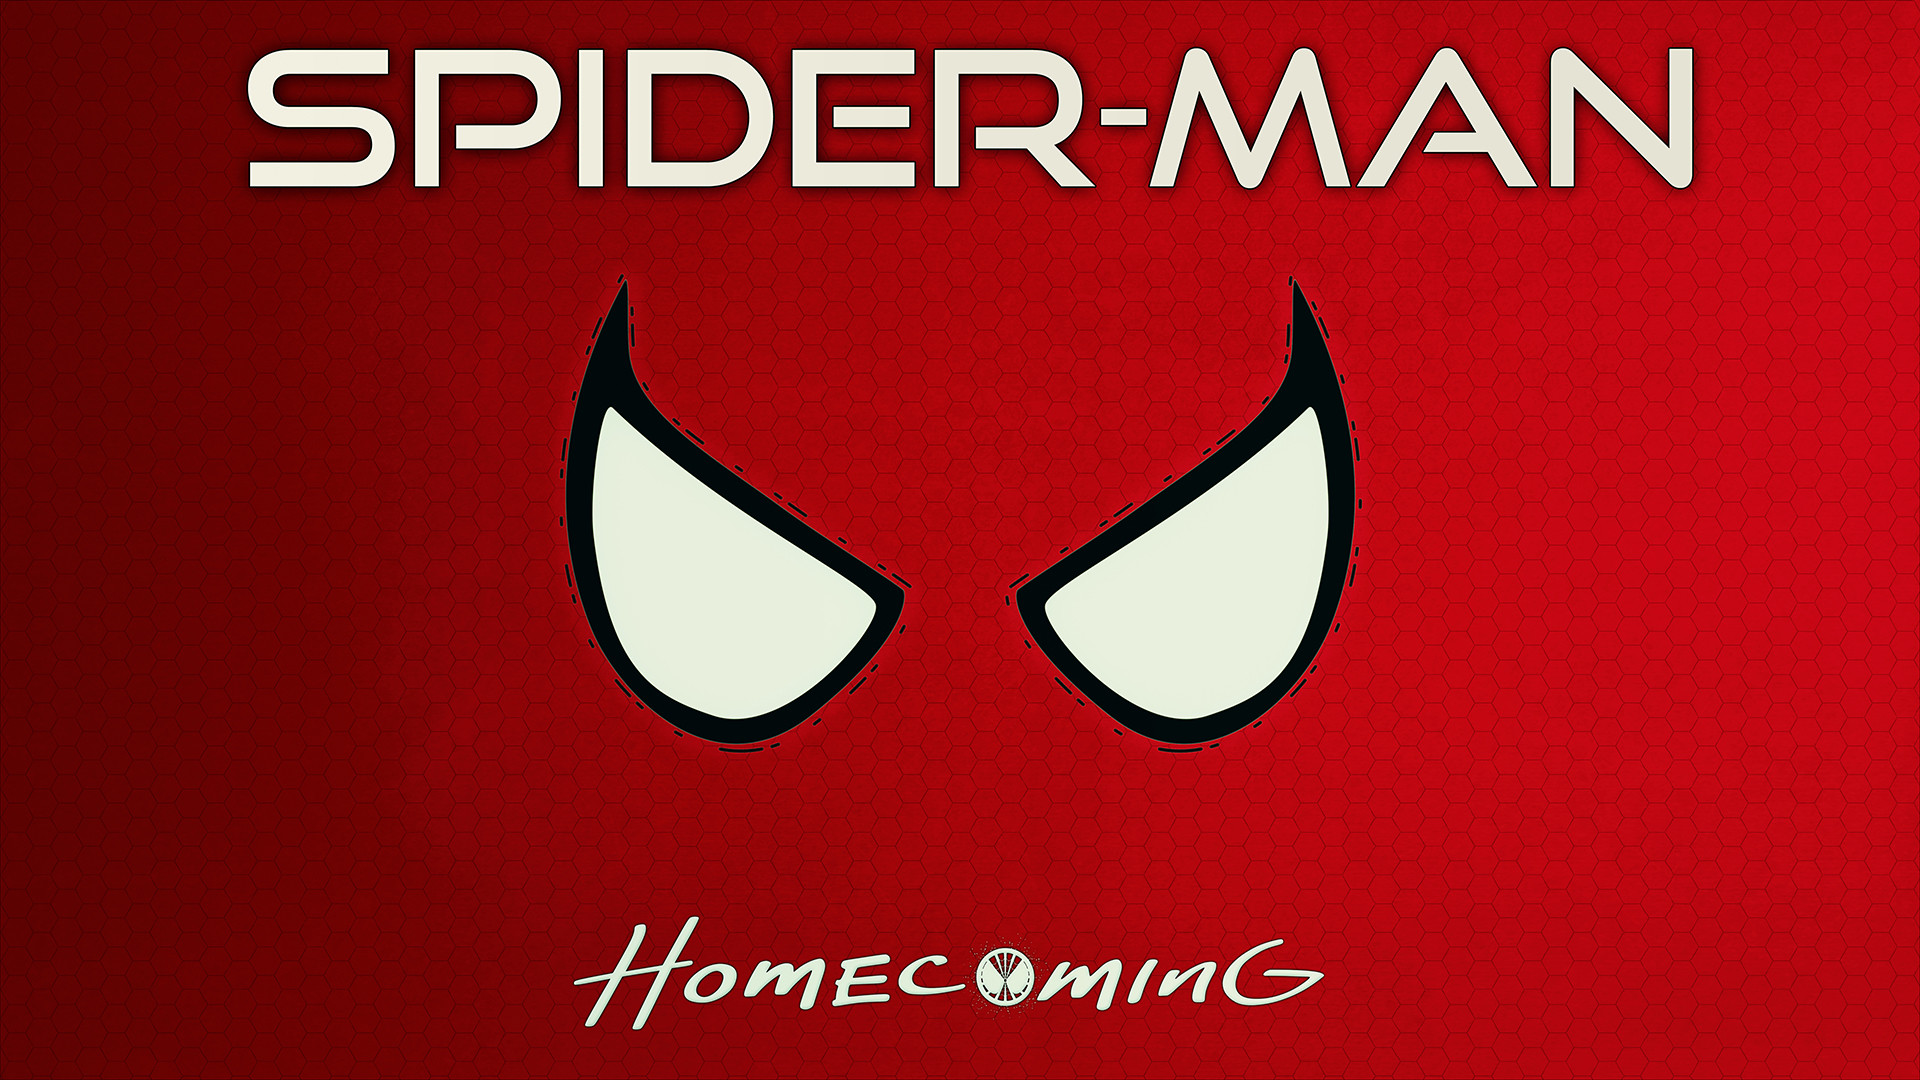 1920x1080 ... Spider-Man Homecoming Wallpaper 8K by caspianmoon